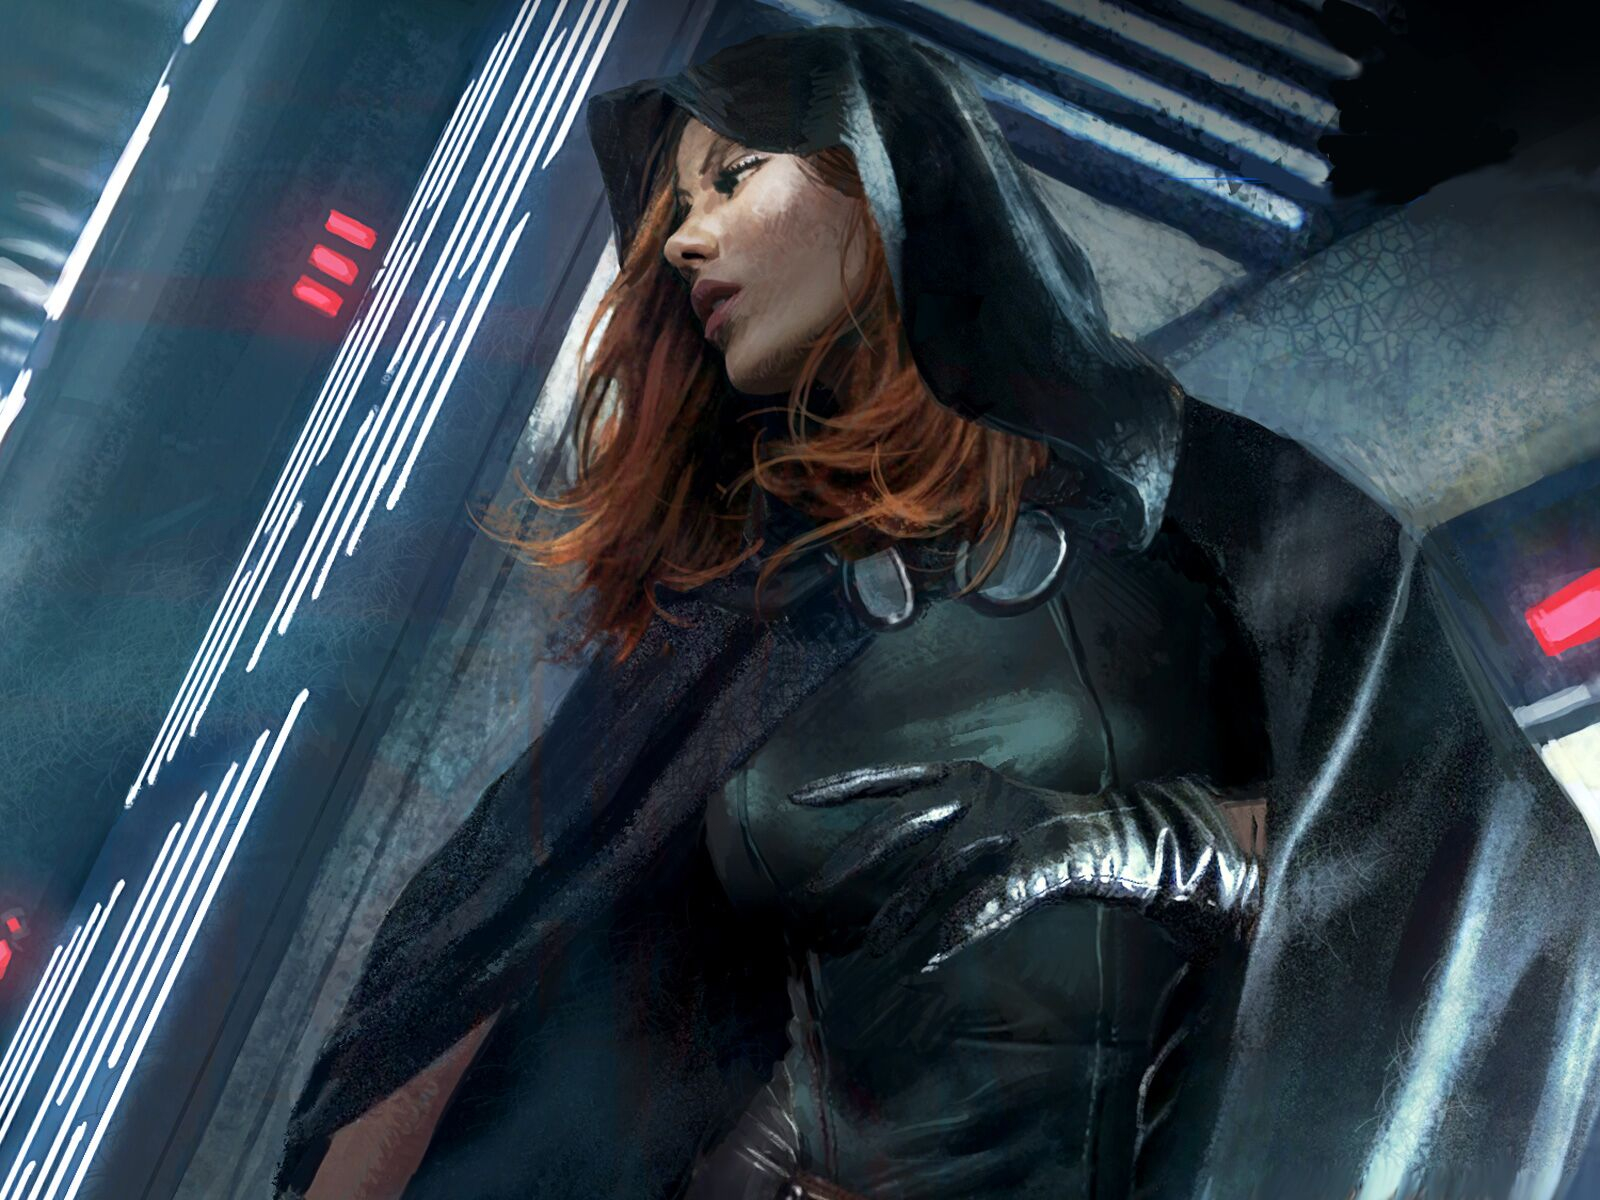 We have an idea who could play Mara Jade and it's not who you might think